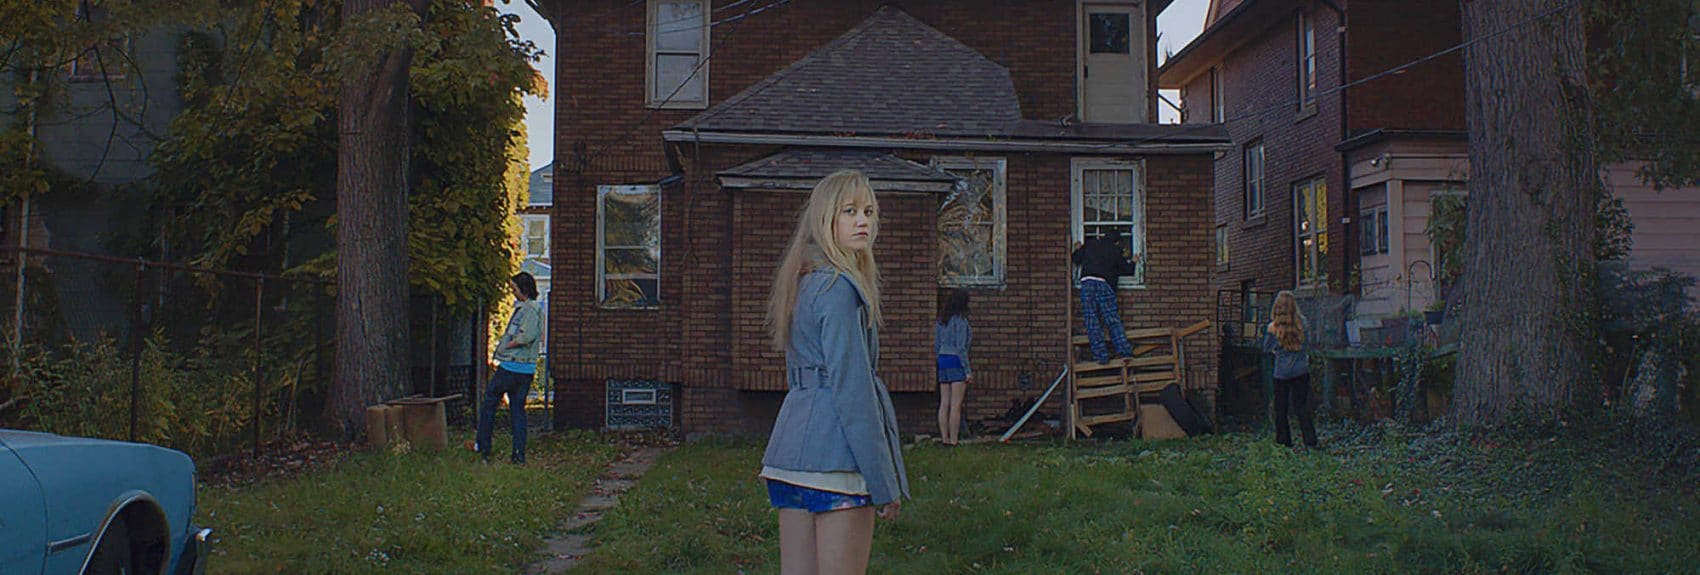 It Follows, critique du film